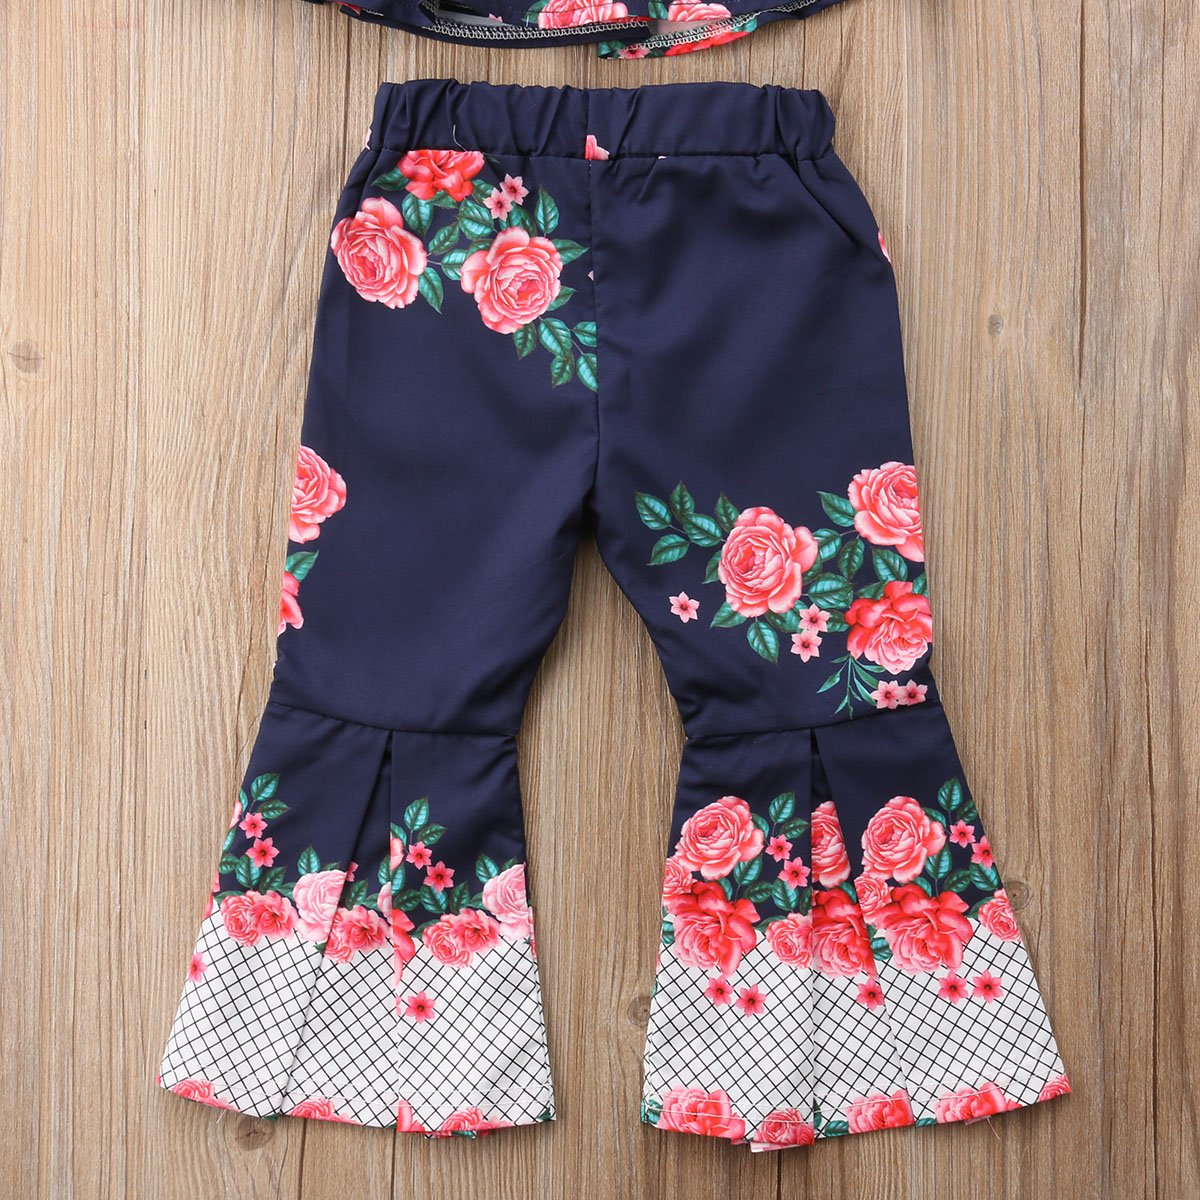 Flower Stitching Wide Leg Long Pants Set Summer 2Pcs Baby Girls Outfits Floral Halter Off Shoulder Crop Top